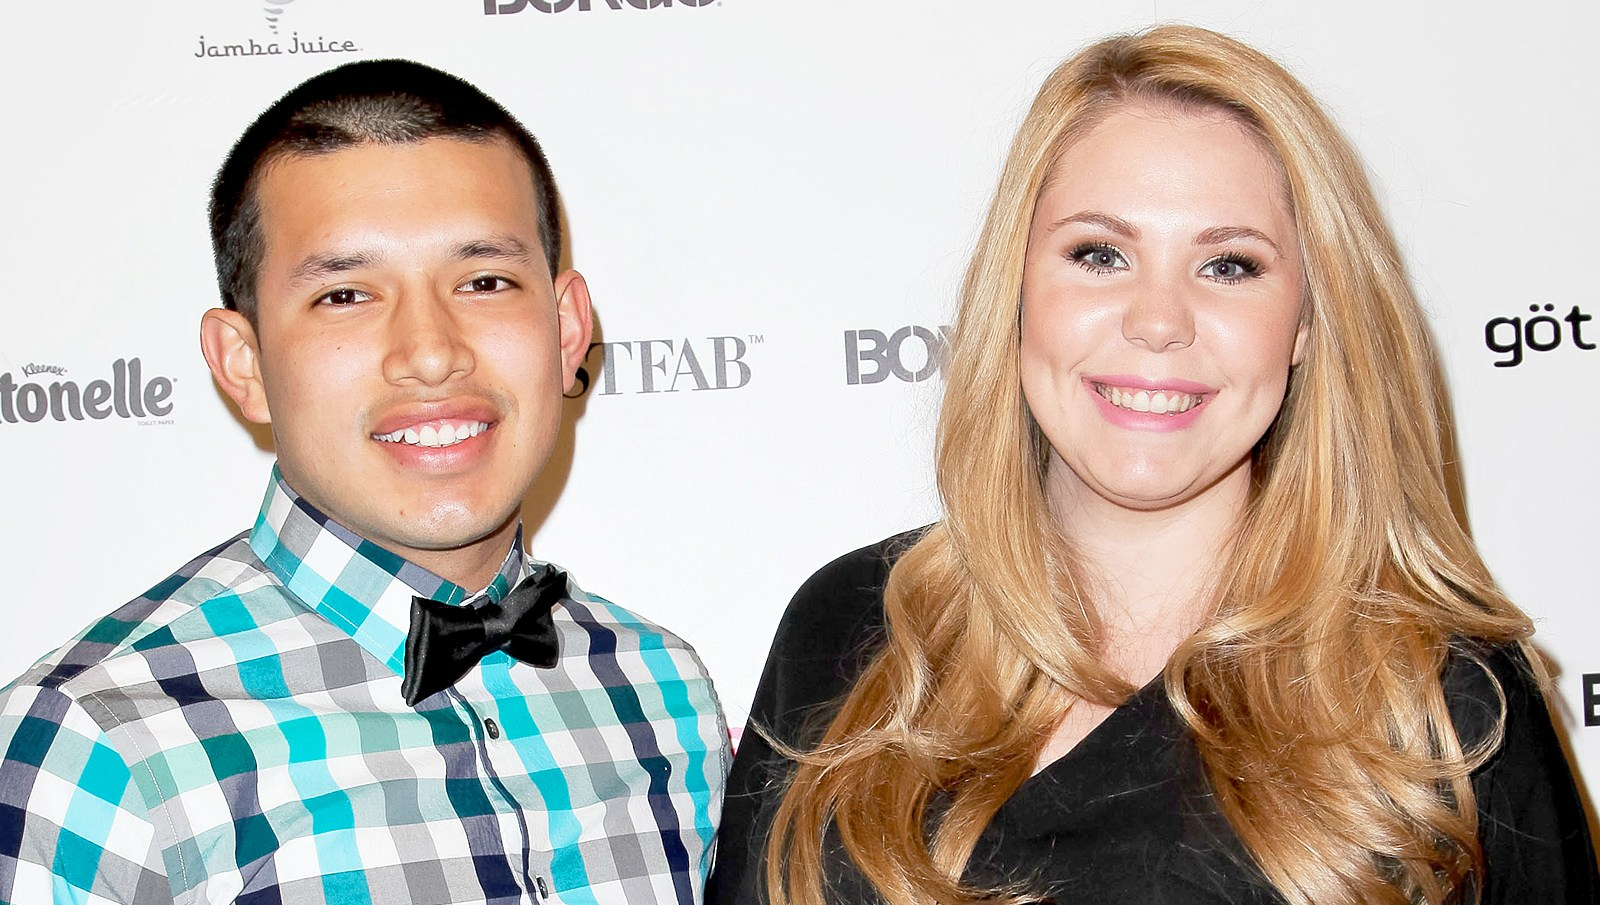 Javi Marroquin and Kailyn Lowry attend the 2017 Hollywood Rocks party at SupperClub in Los Angeles, California.